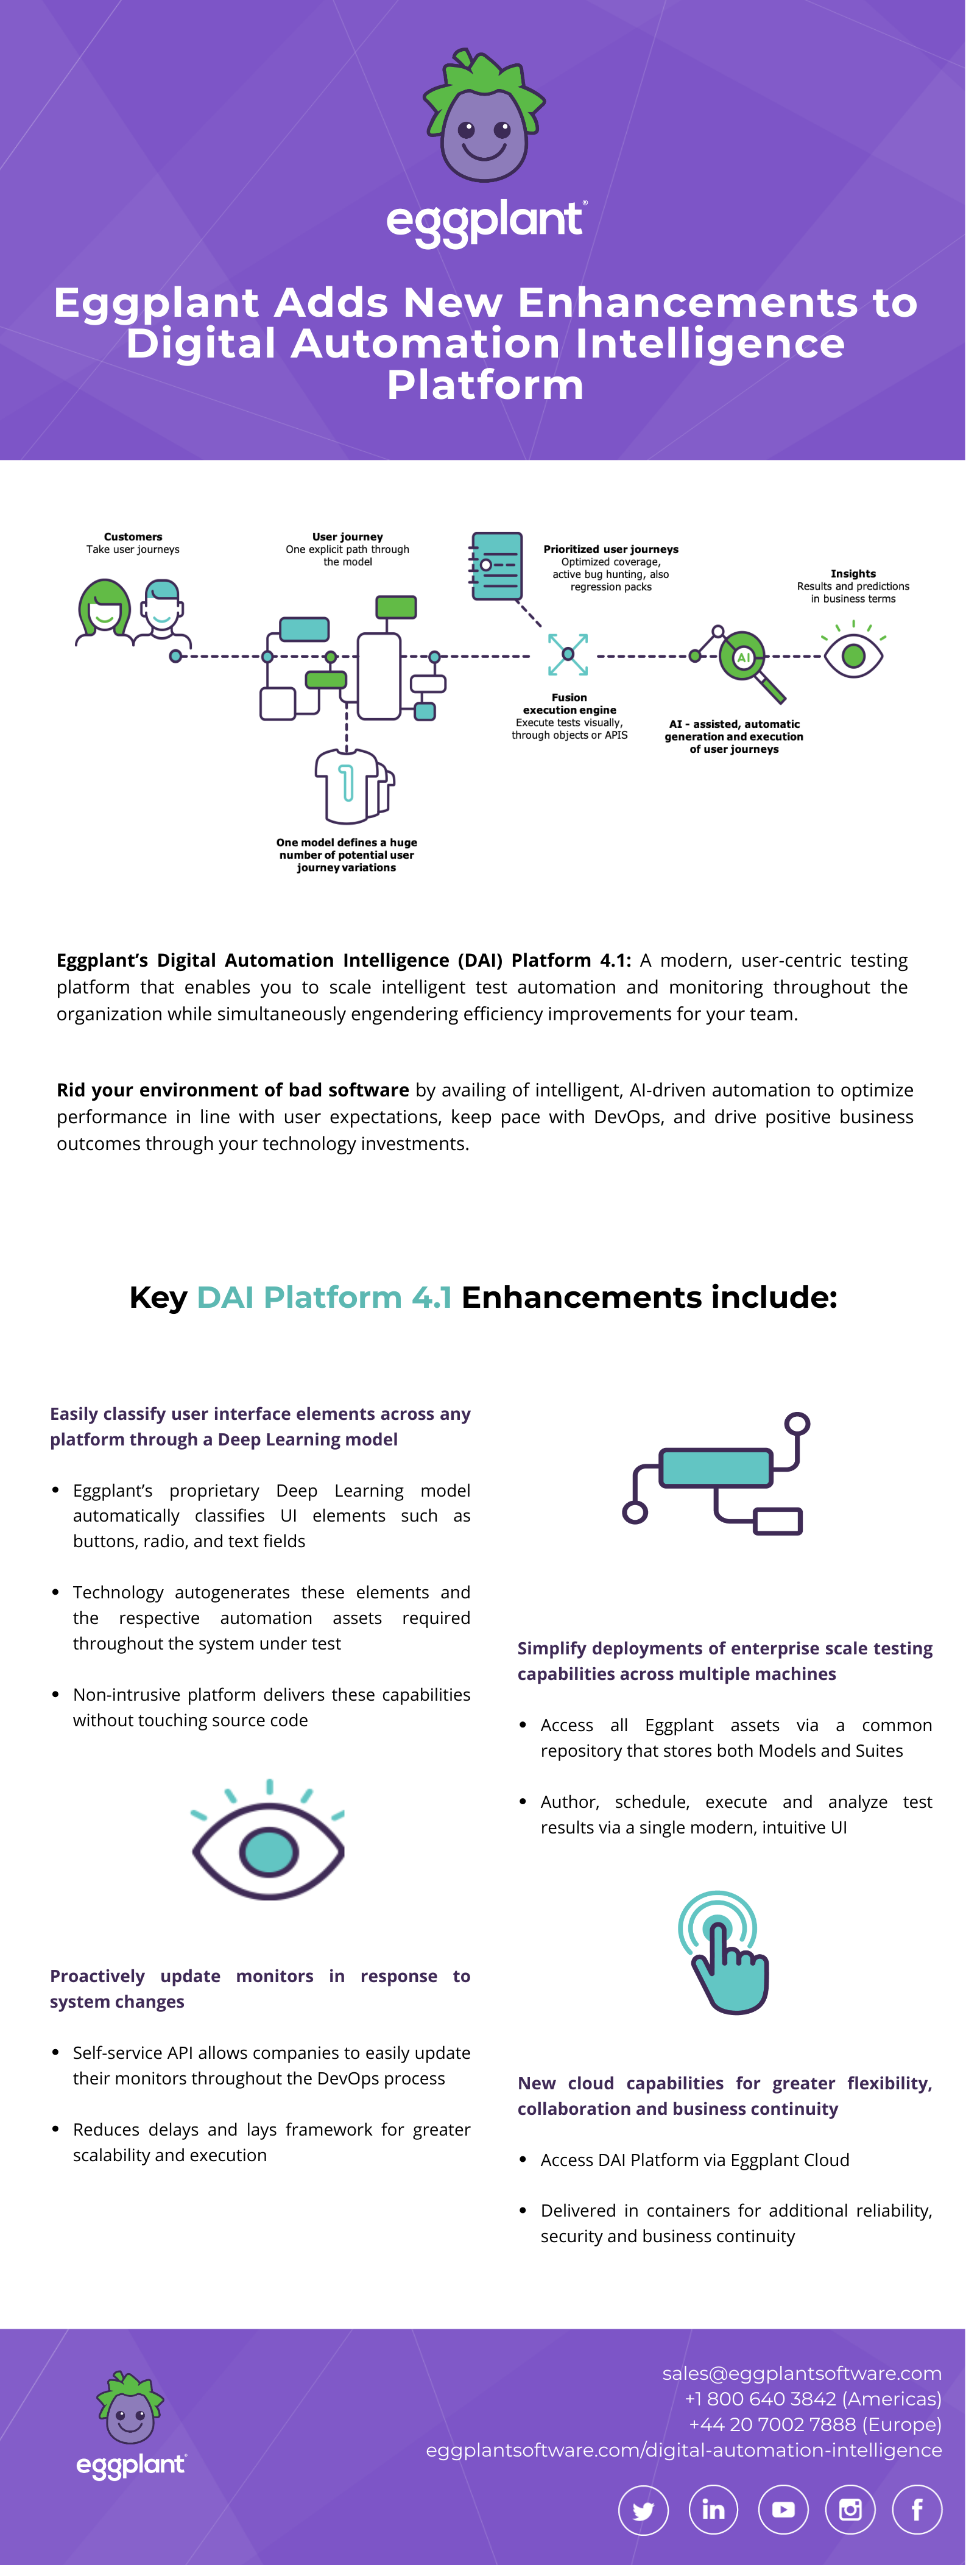 Eggplant adds new enhancements to Digital Automation Intelligence platform